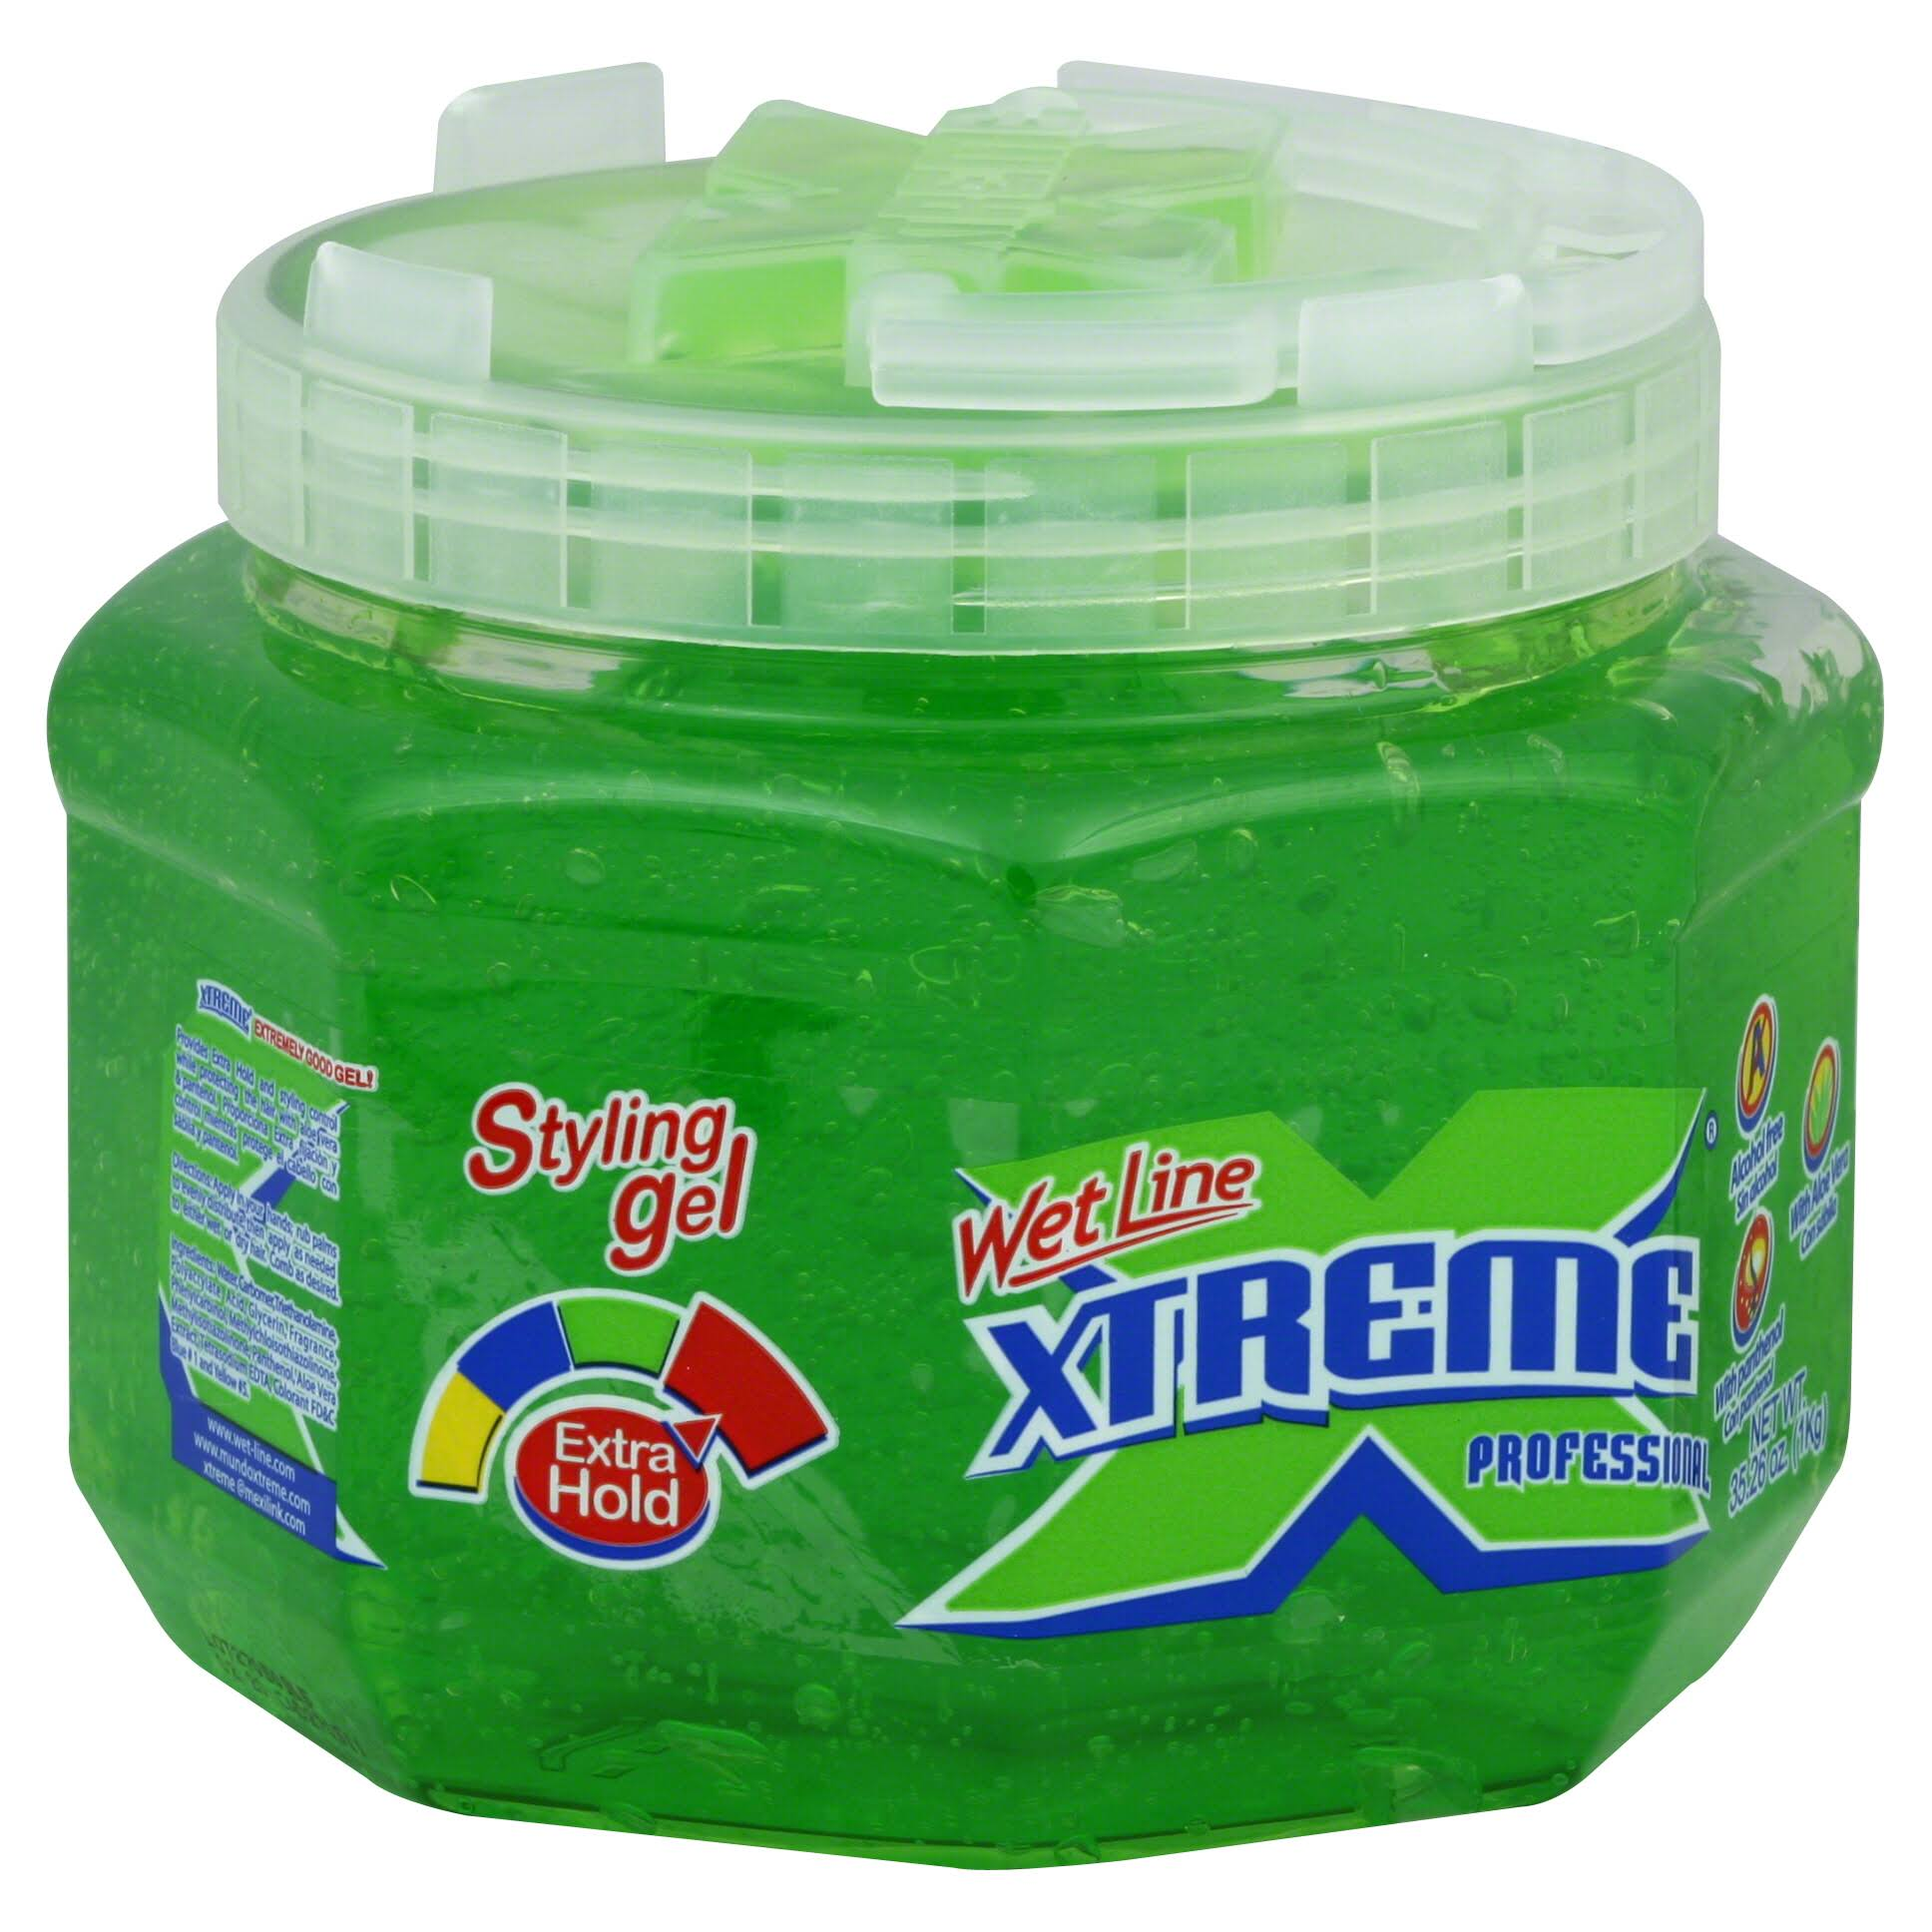 Xtreme Professional Wet Line Styling Gel - Extra Hold, Green, 35.26oz